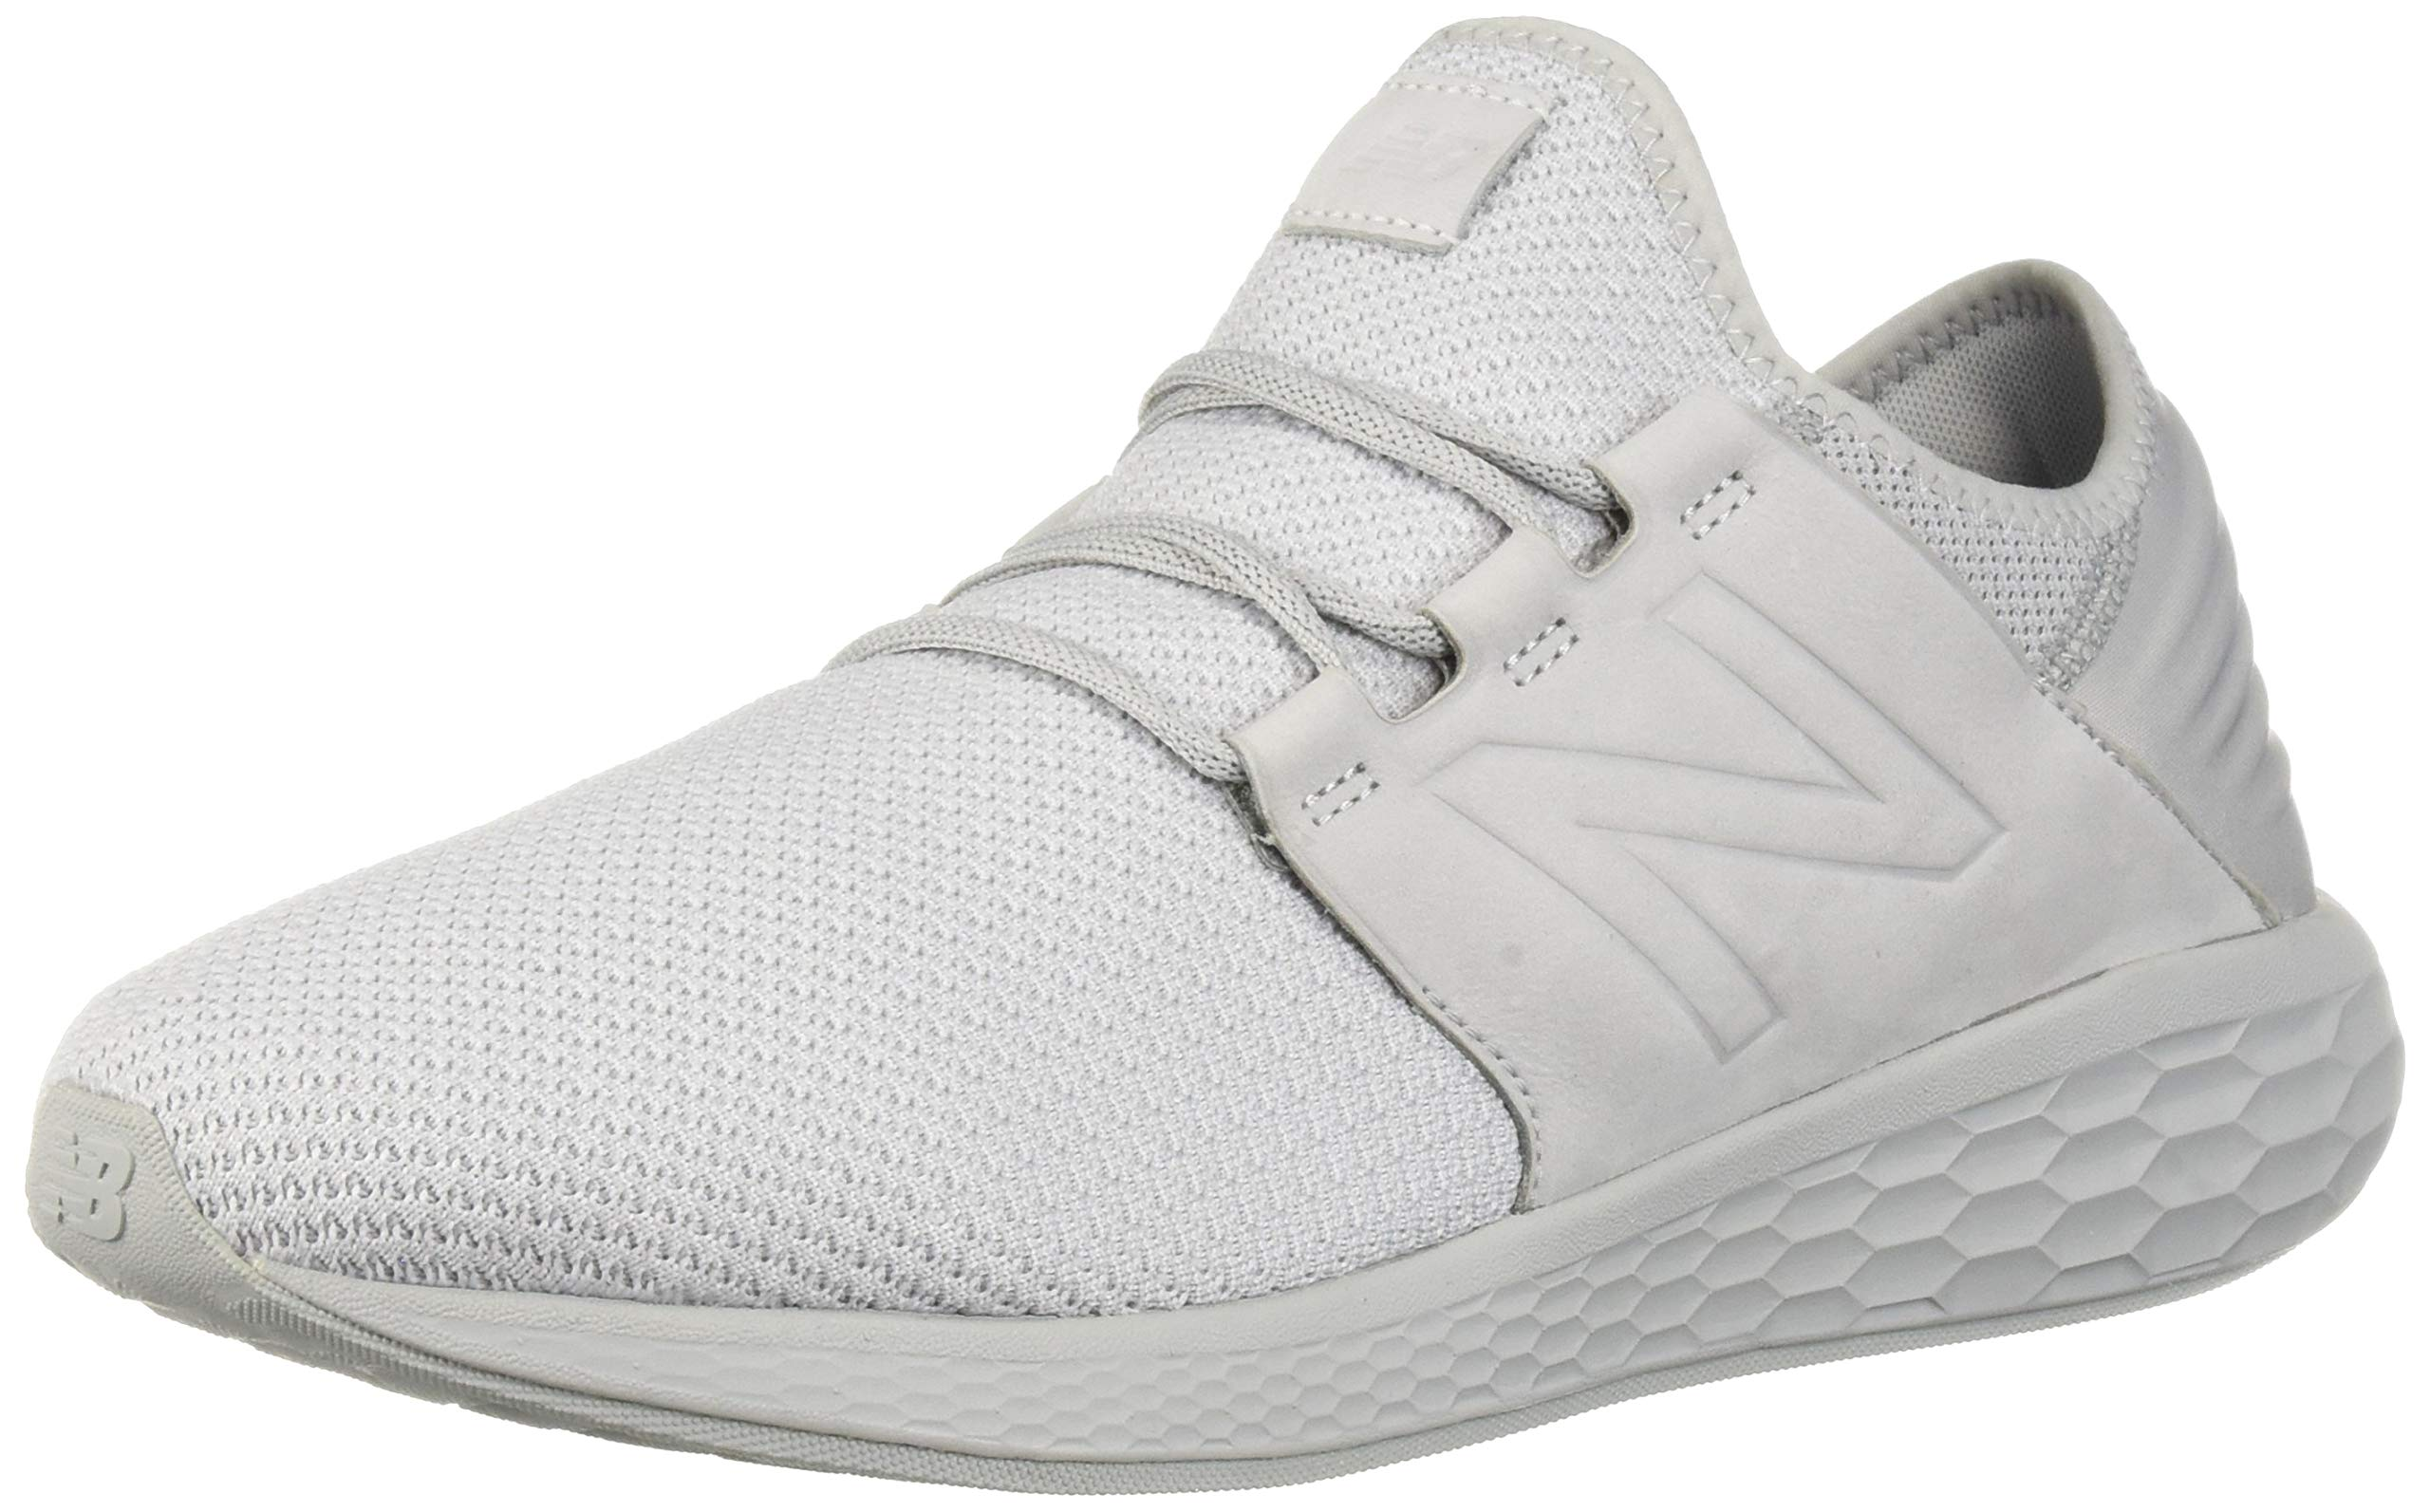 New Balance Men's Cruz V2 Fresh Foam Running Shoe, arctic fox/white/nubuck, 7 D US by New Balance (Image #1)